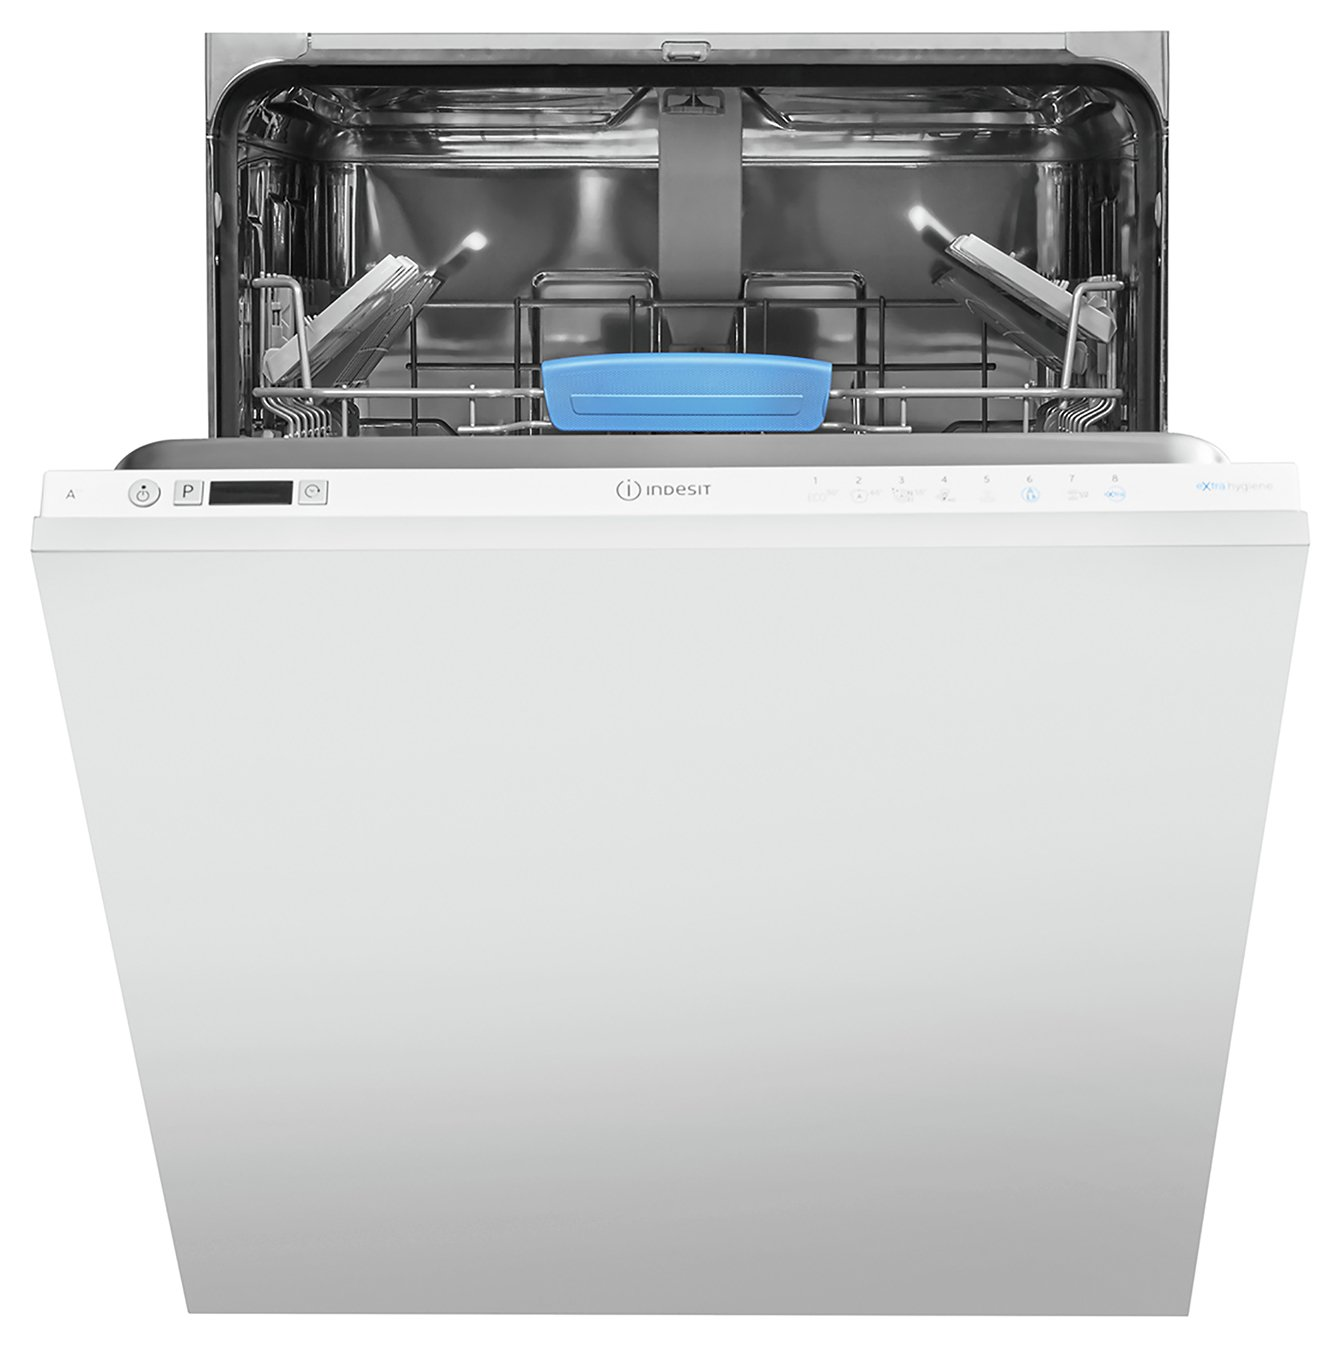 Indesit DIFP8T96ZUK Full Size Dishwasher - White